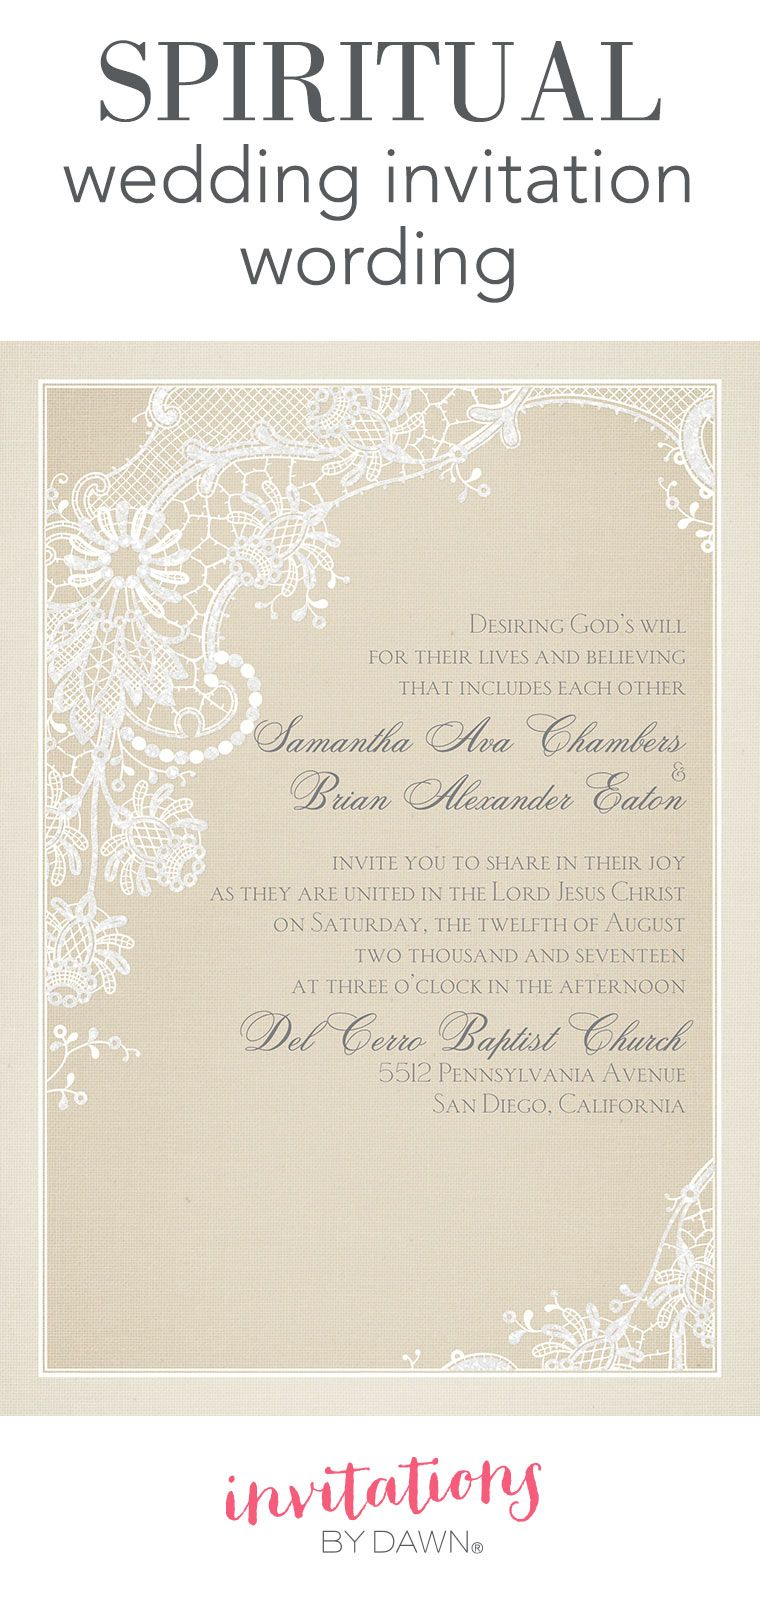 Spiritual Wedding Invitation Wording Wedding Invitations Examples Sample Wedding Invitation Wording Christian Wedding Invitation Wording